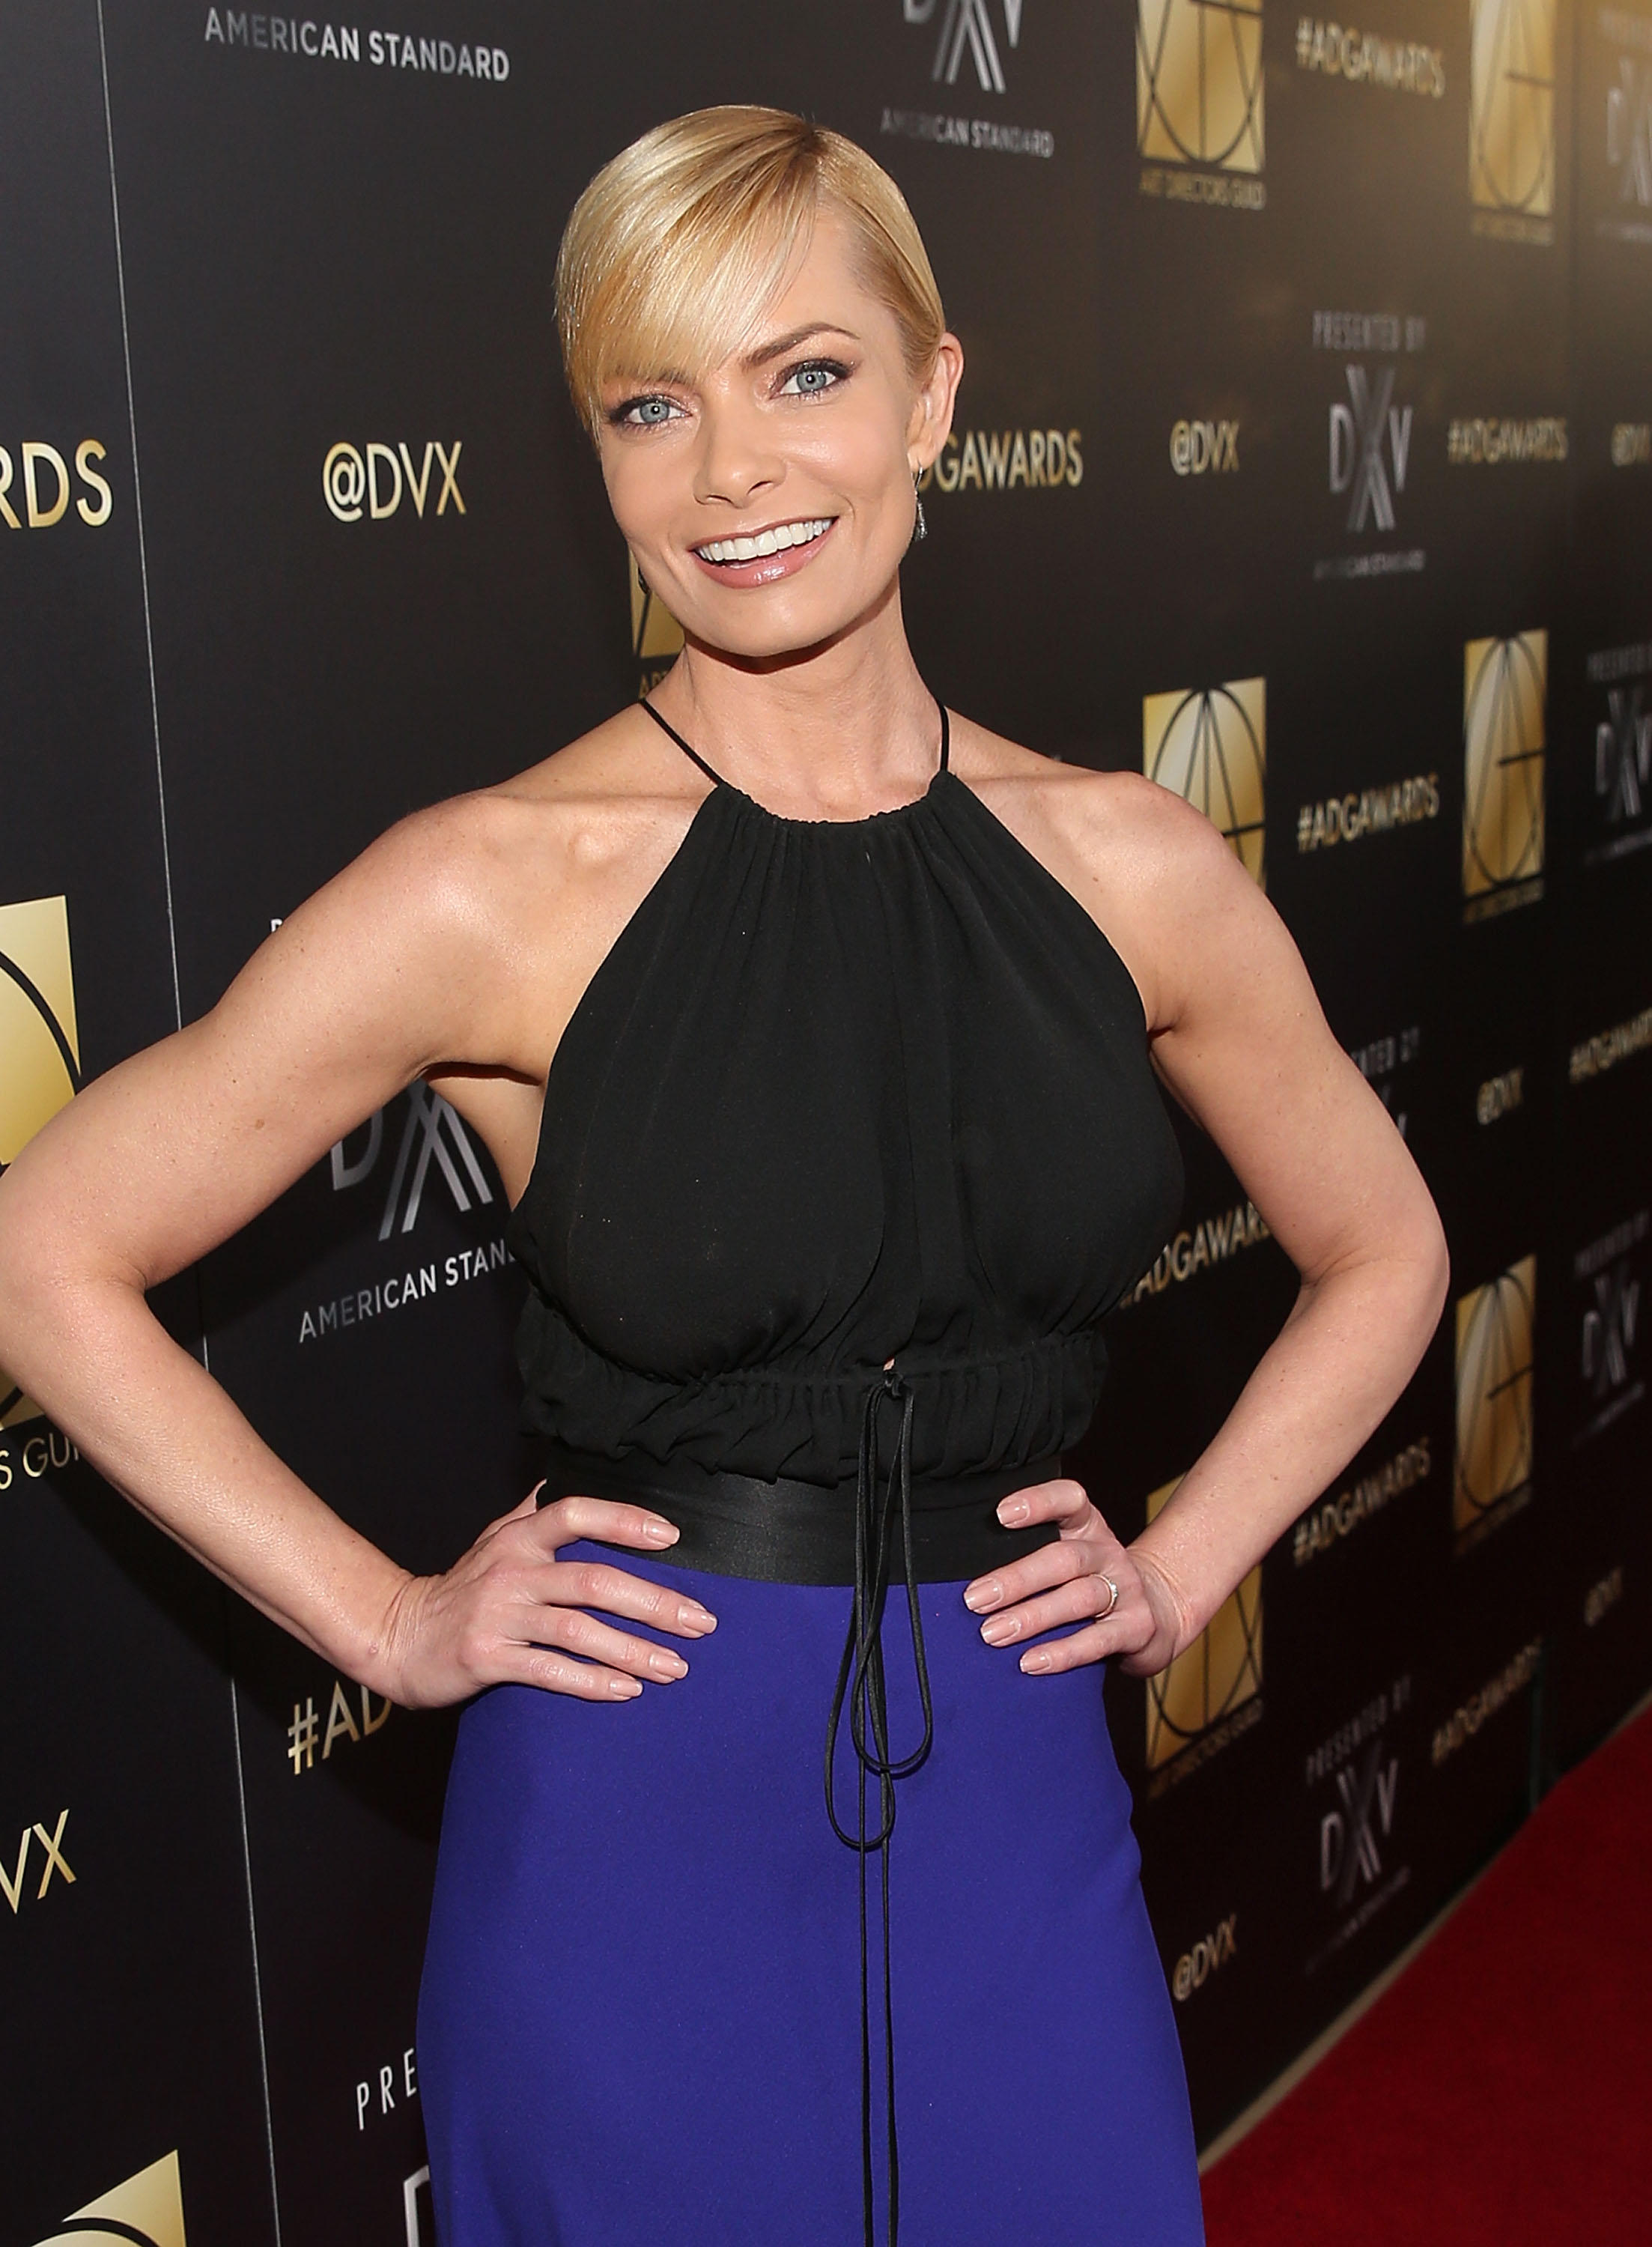 Images Jaime Pressly naked (85 foto and video), Tits, Bikini, Twitter, swimsuit 2018